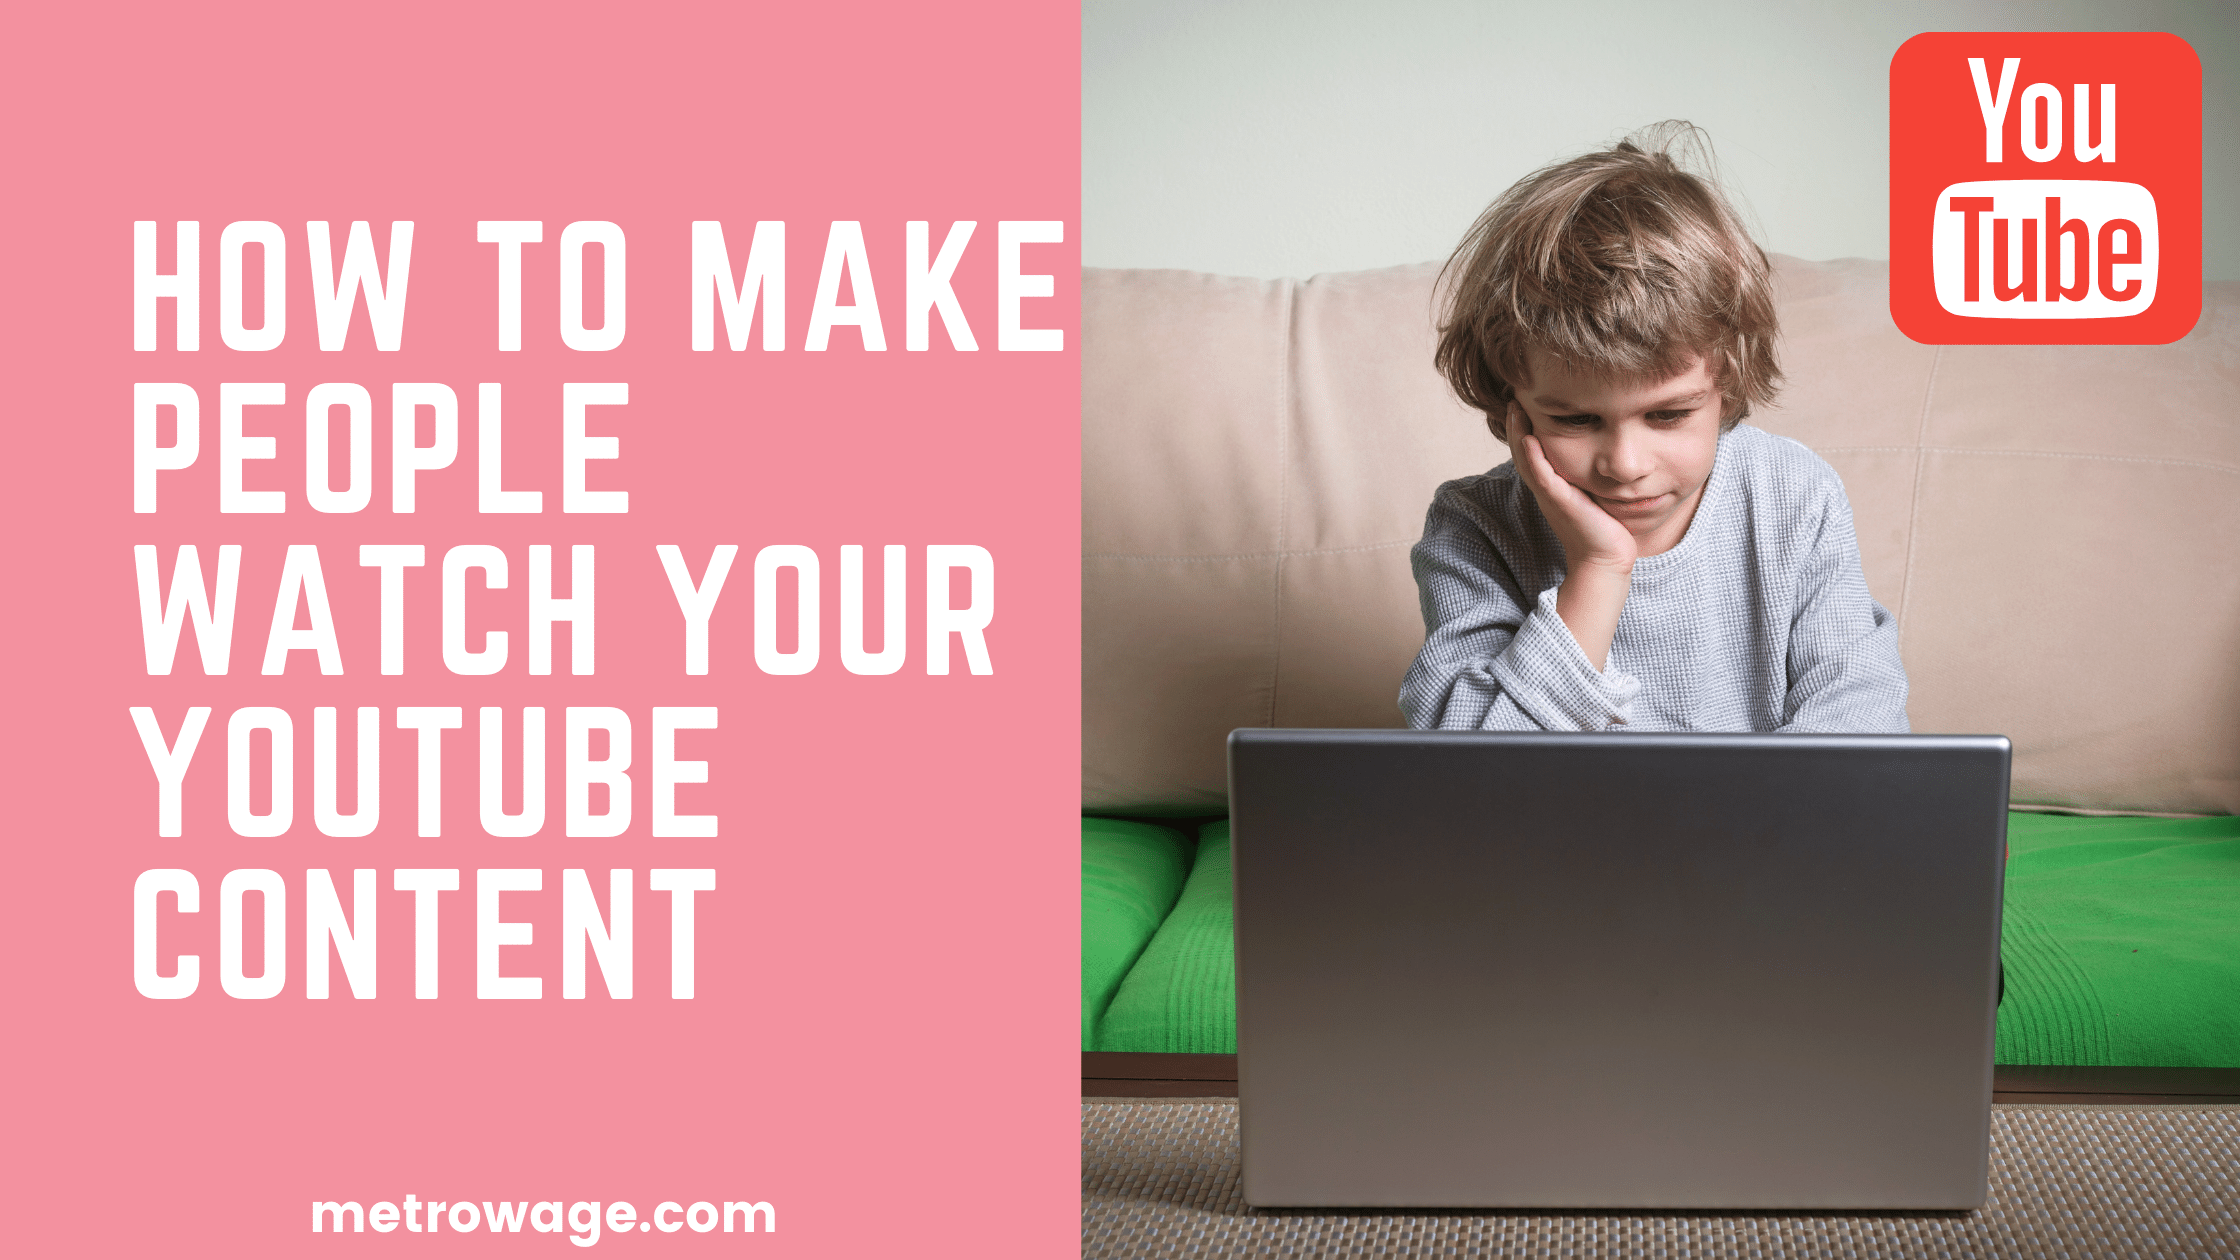 How to Make People Watch Your YouTube Content